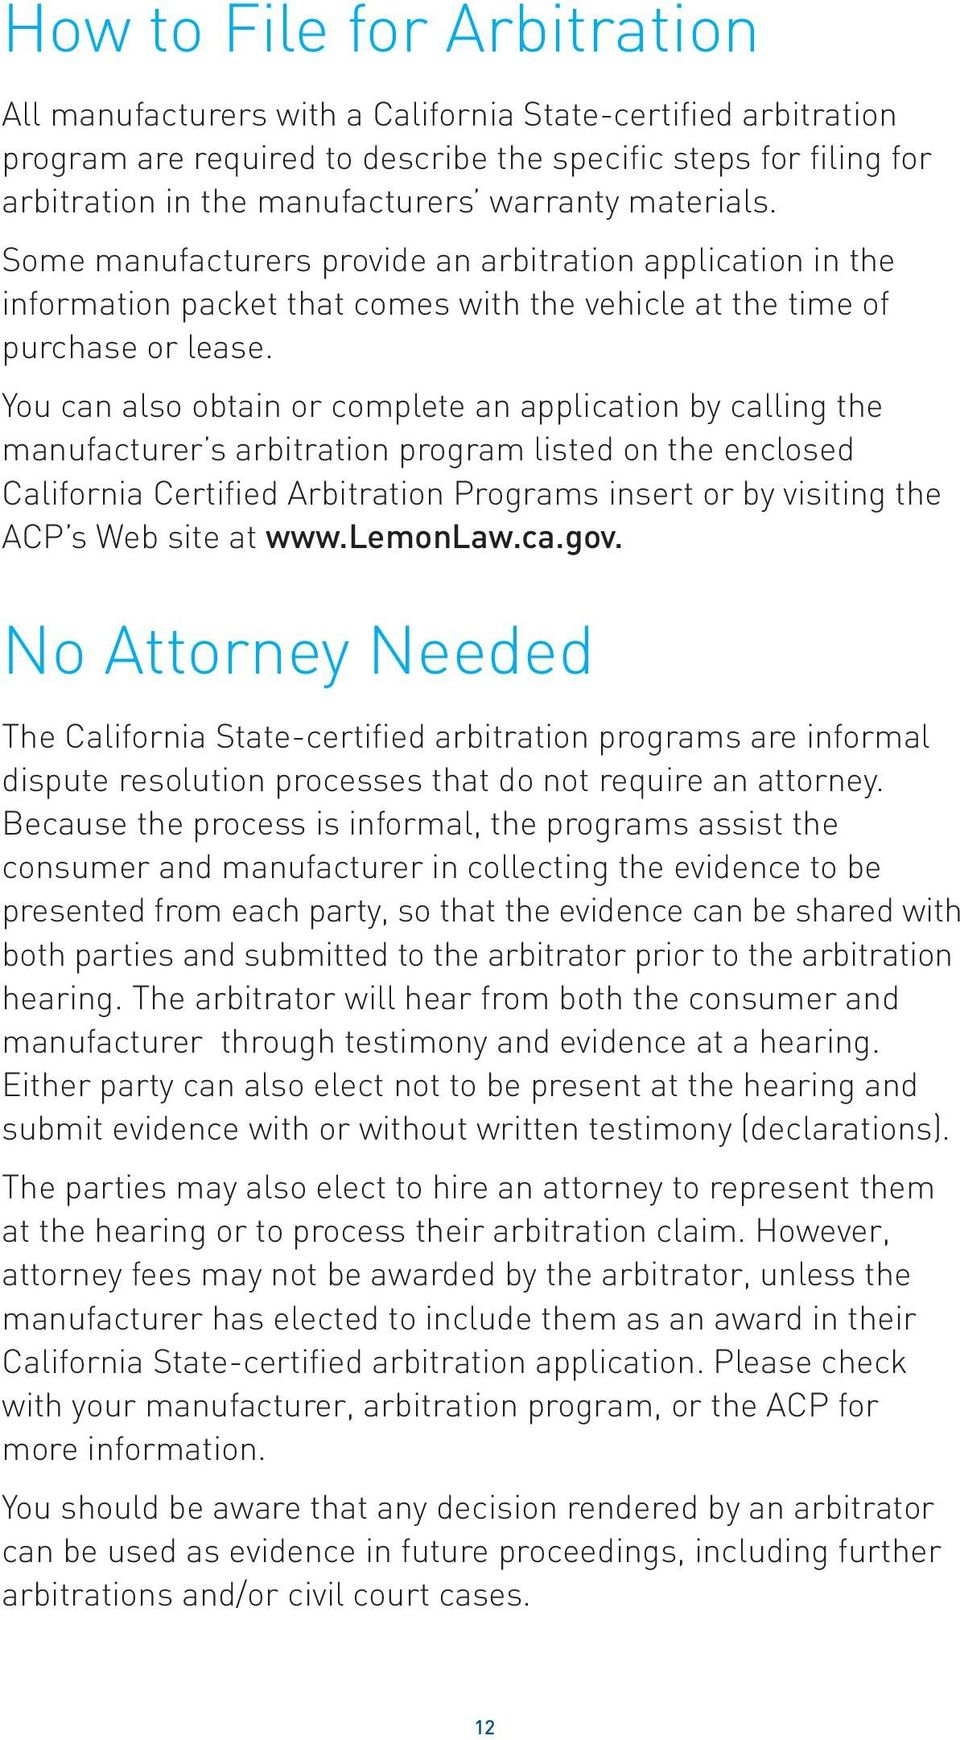 You can also obtain or complete an application by calling the manufacturer s arbitration program listed on the enclosed California Certified Arbitration Programs insert or by visiting the ACP s Web